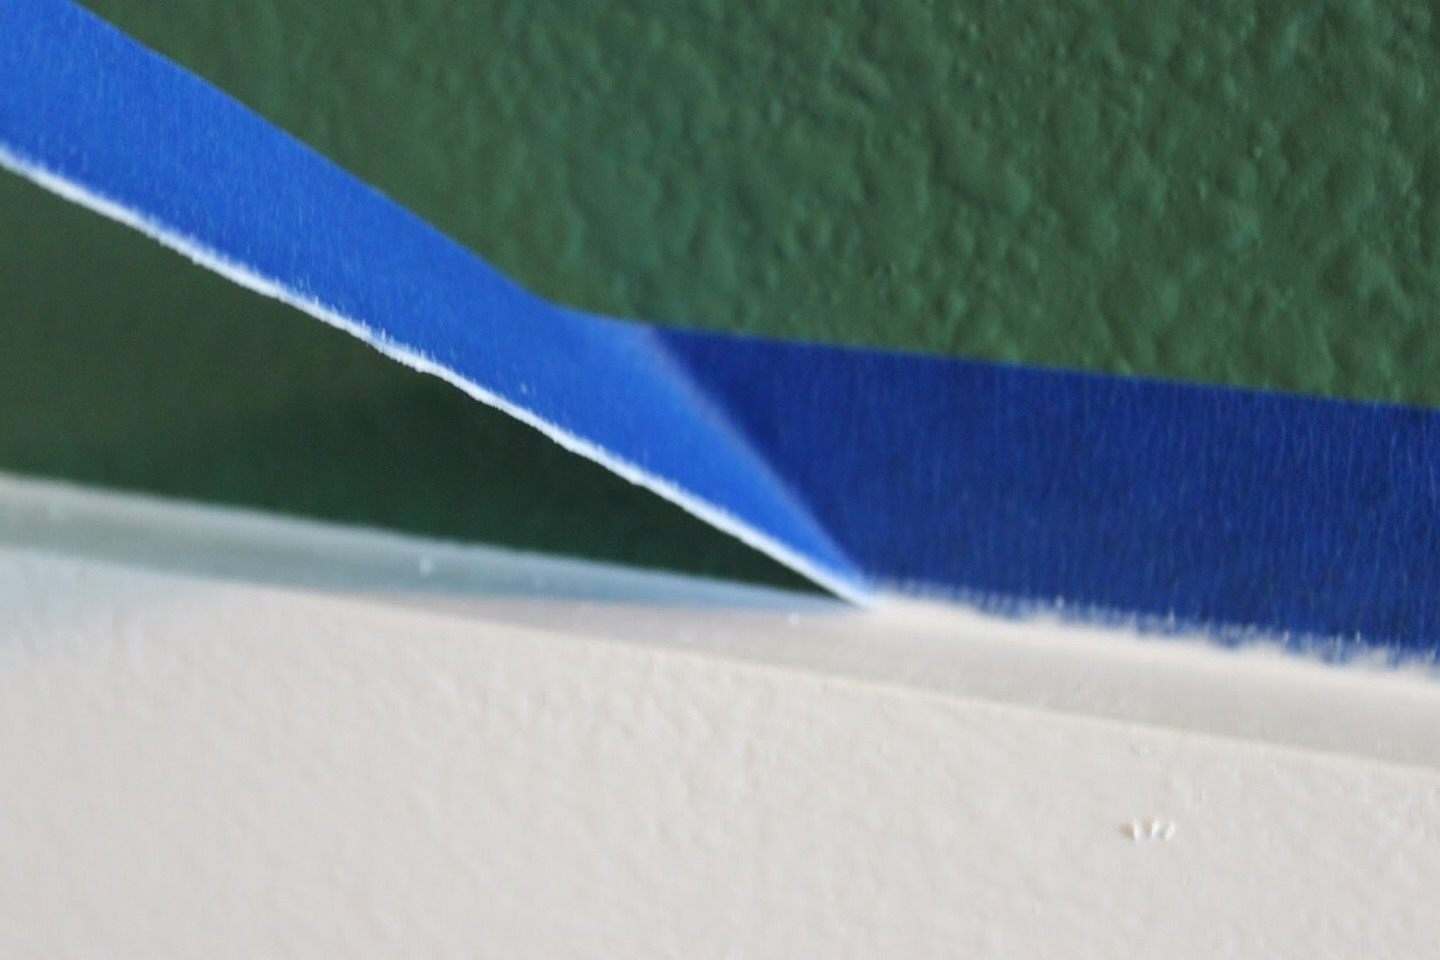 Slowly and carefully pull away painters tape